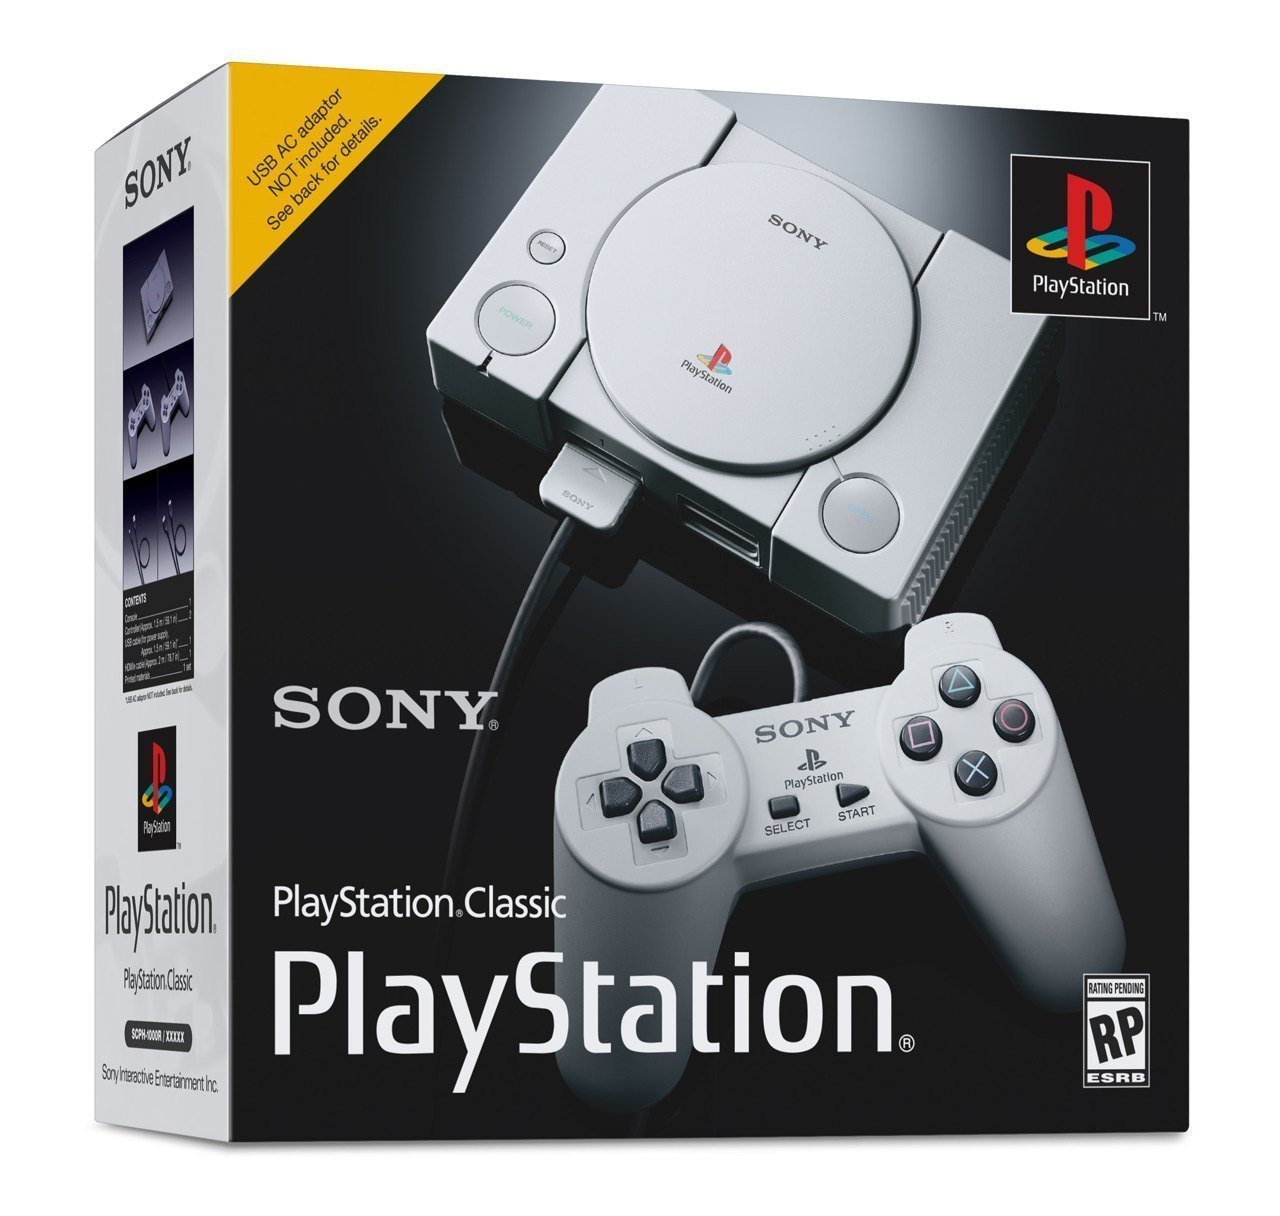 PlayStation Classic Mini-Console Hitting Stores in December